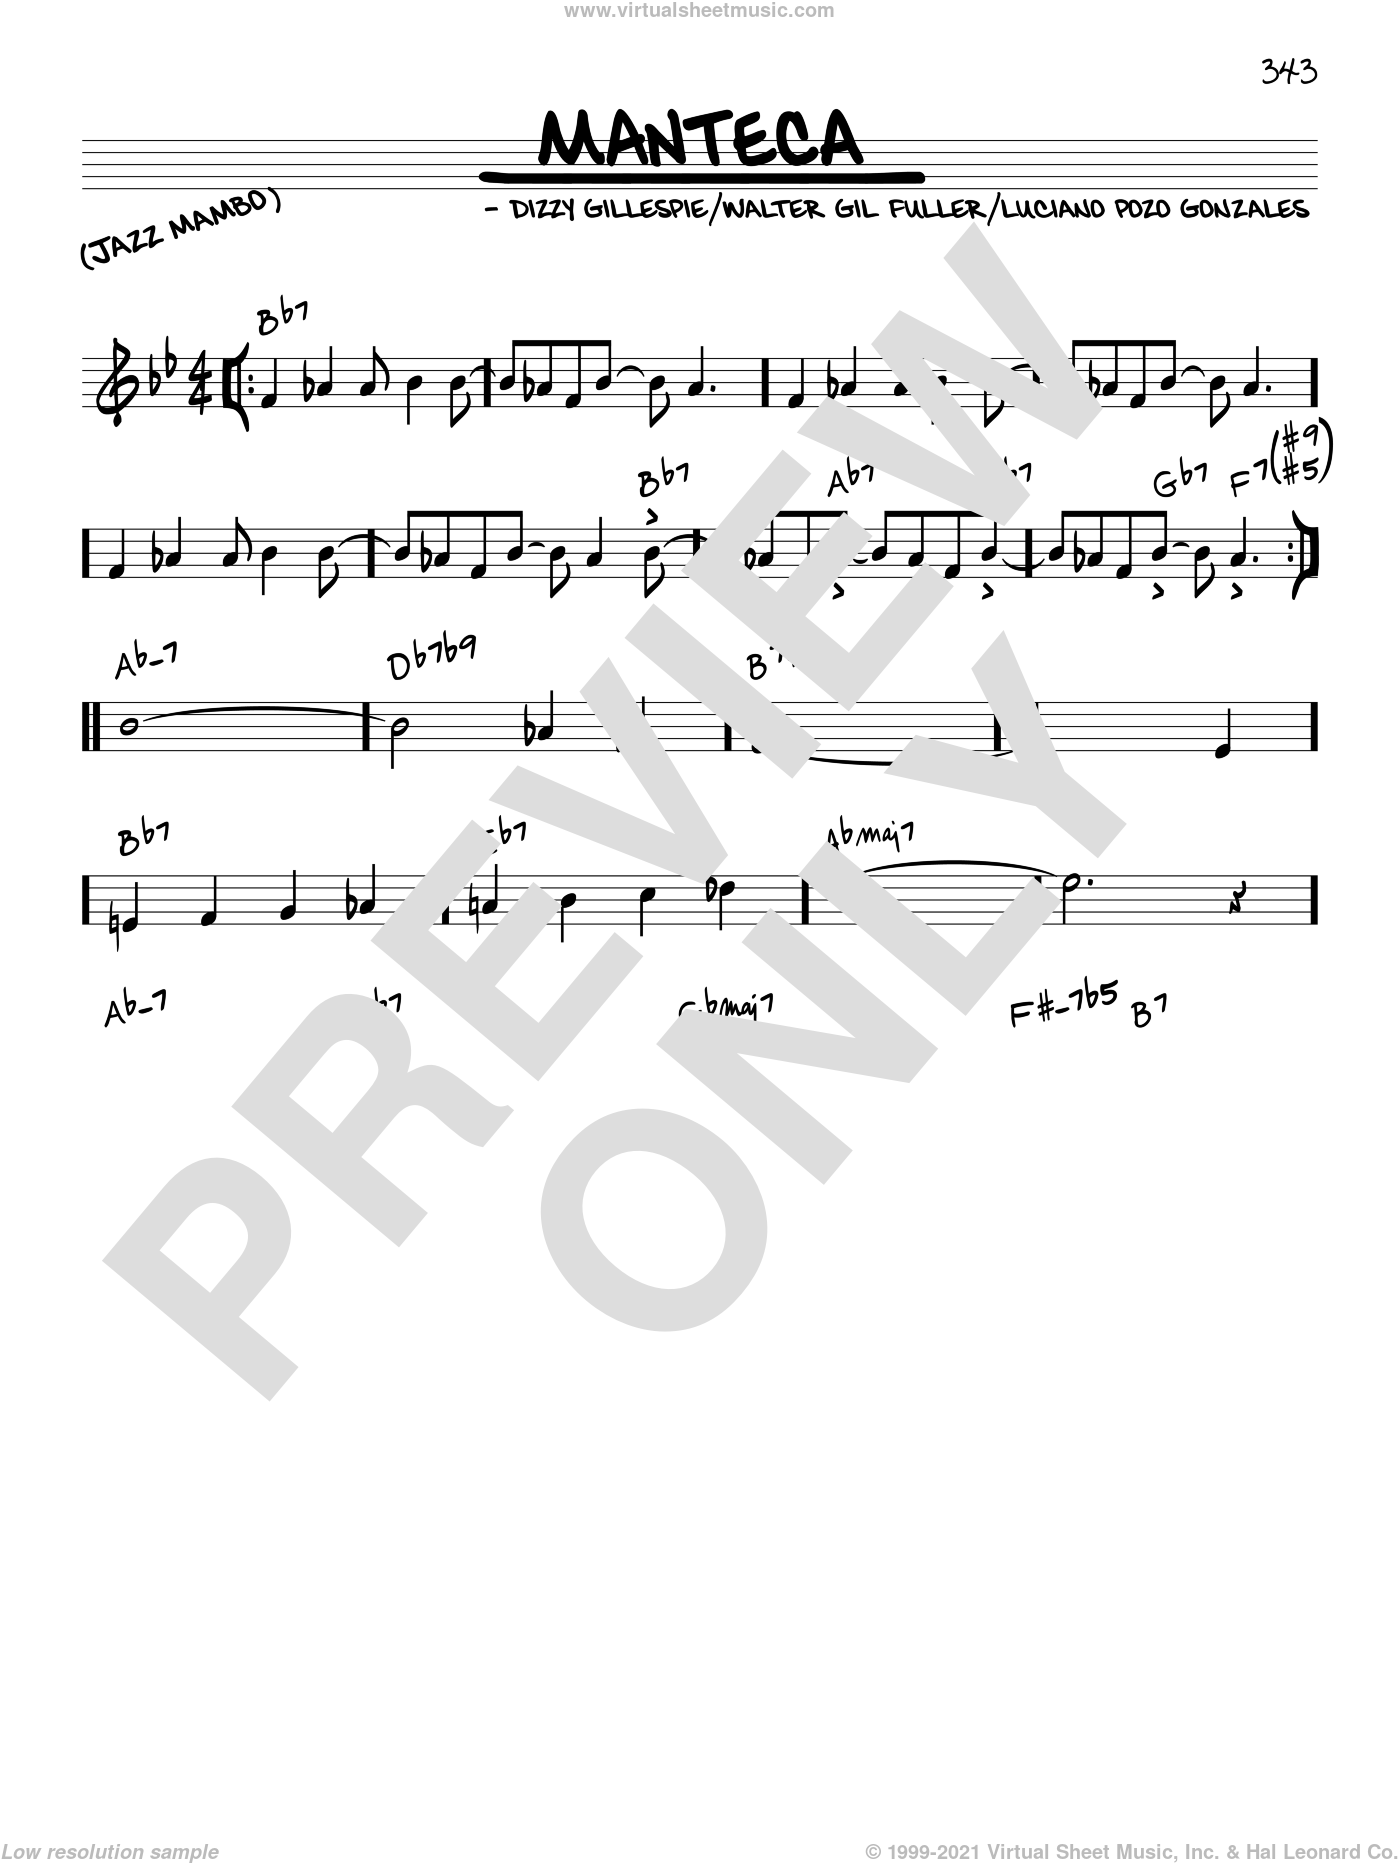 Manteca sheet music for voice and other instruments (in C) by Dizzy Gillespie, Luciano Pozo Gonzales and Walter Gil Fuller, intermediate skill level